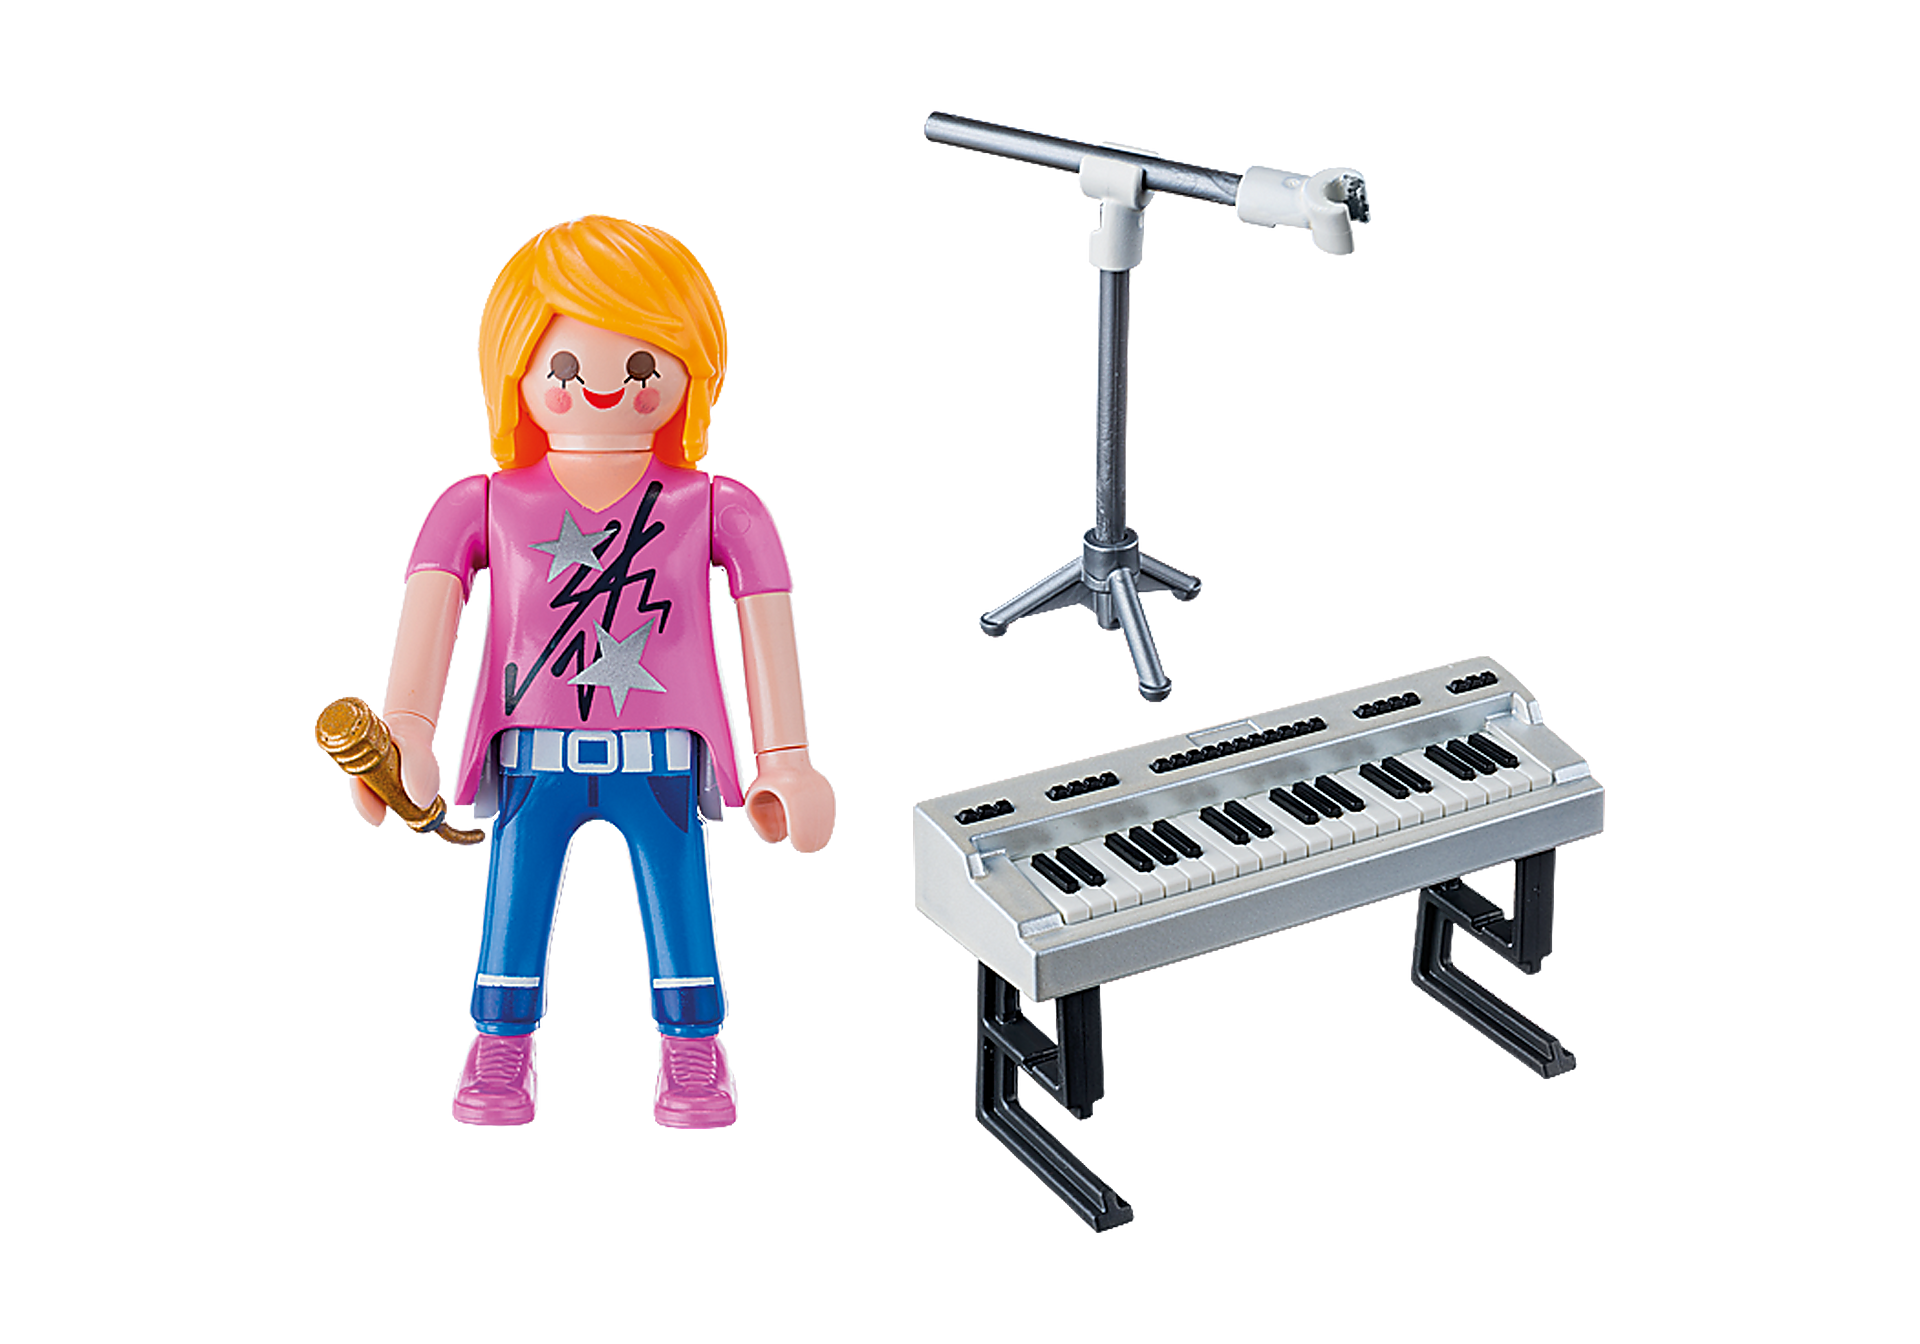 http://media.playmobil.com/i/playmobil/9095_product_box_back/Sängerin am Keyboard